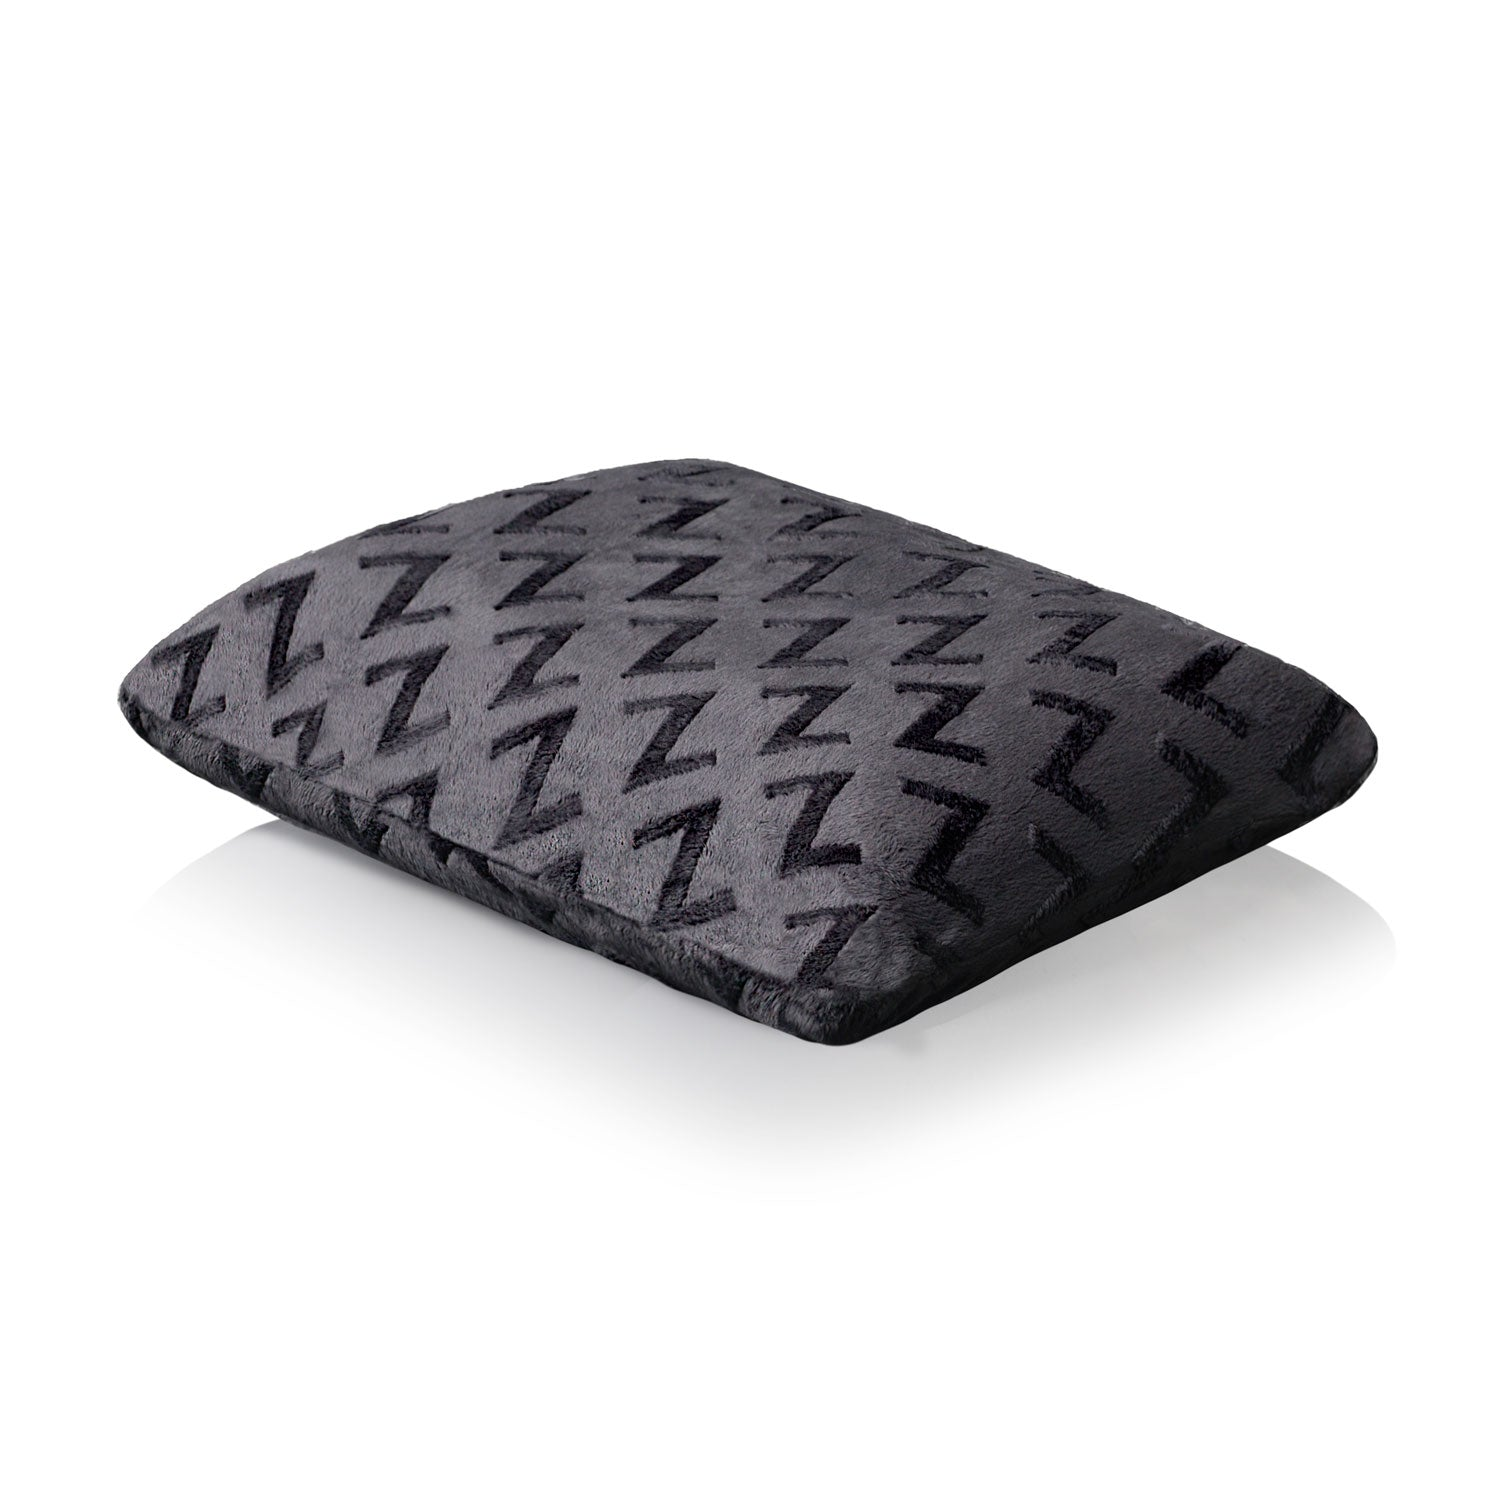 Malouf Travel Gelled Microfiber®